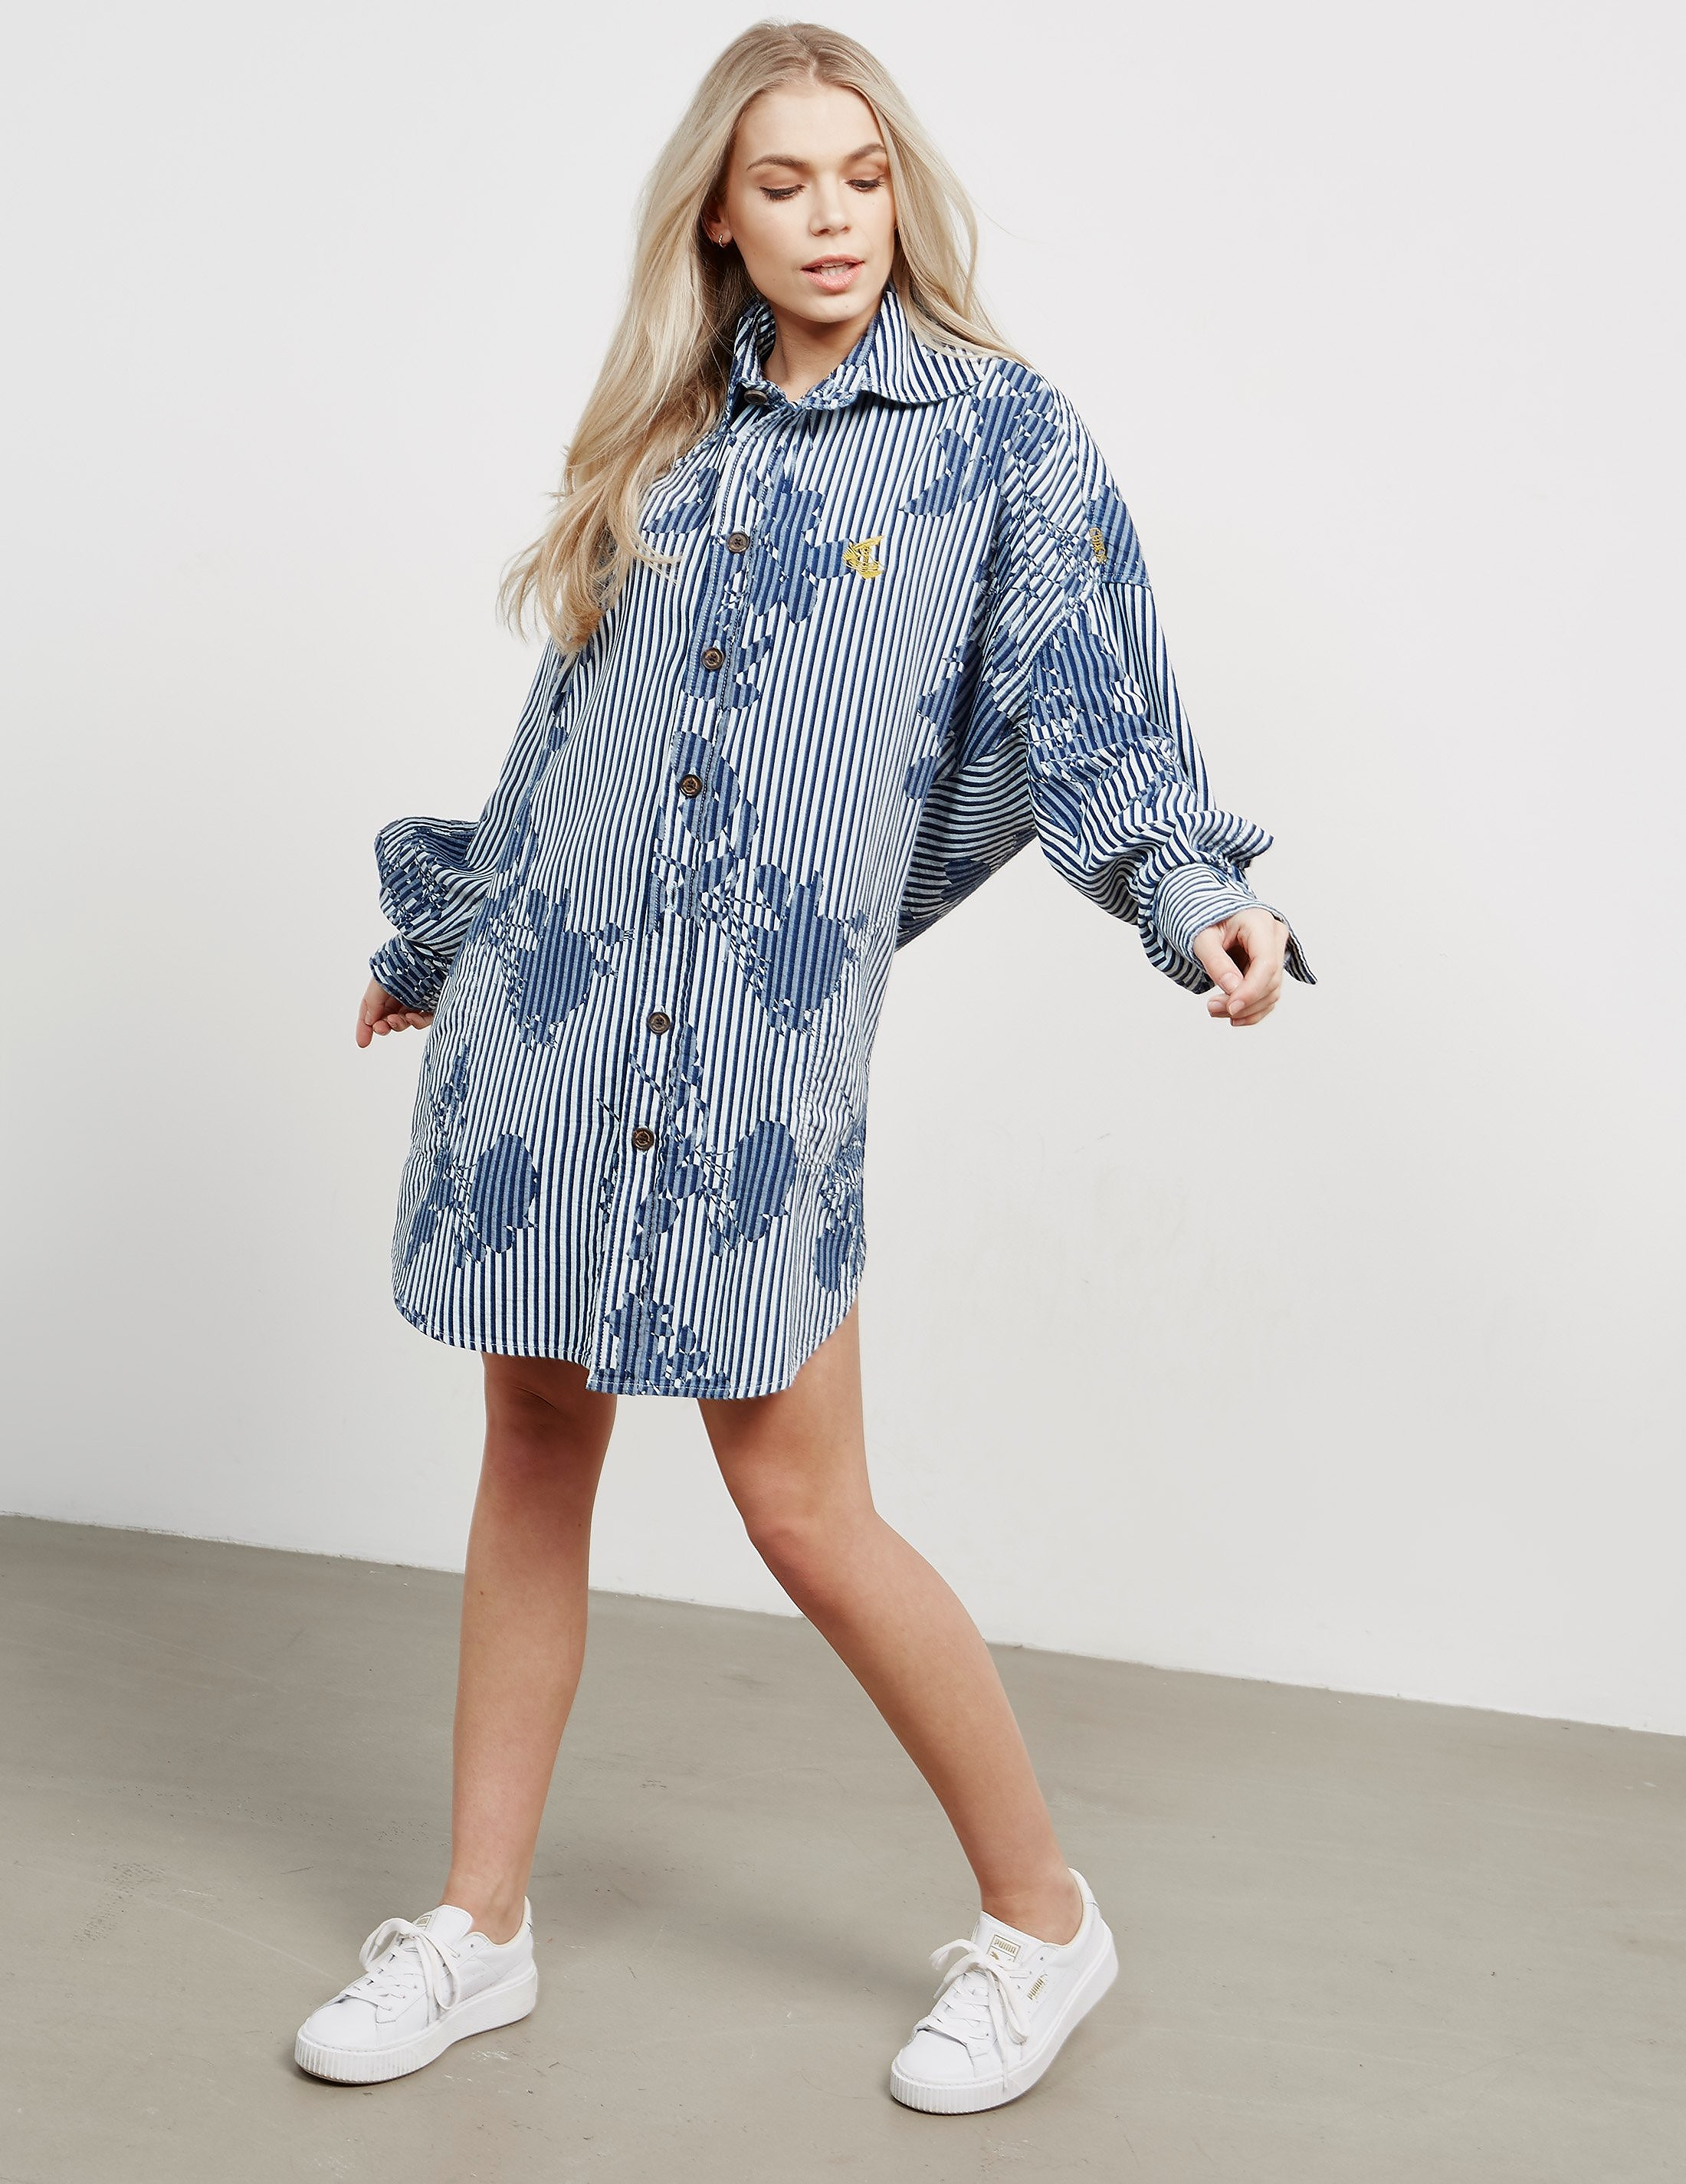 Vivienne Westwood Anglomania Chaos Shirt Dress